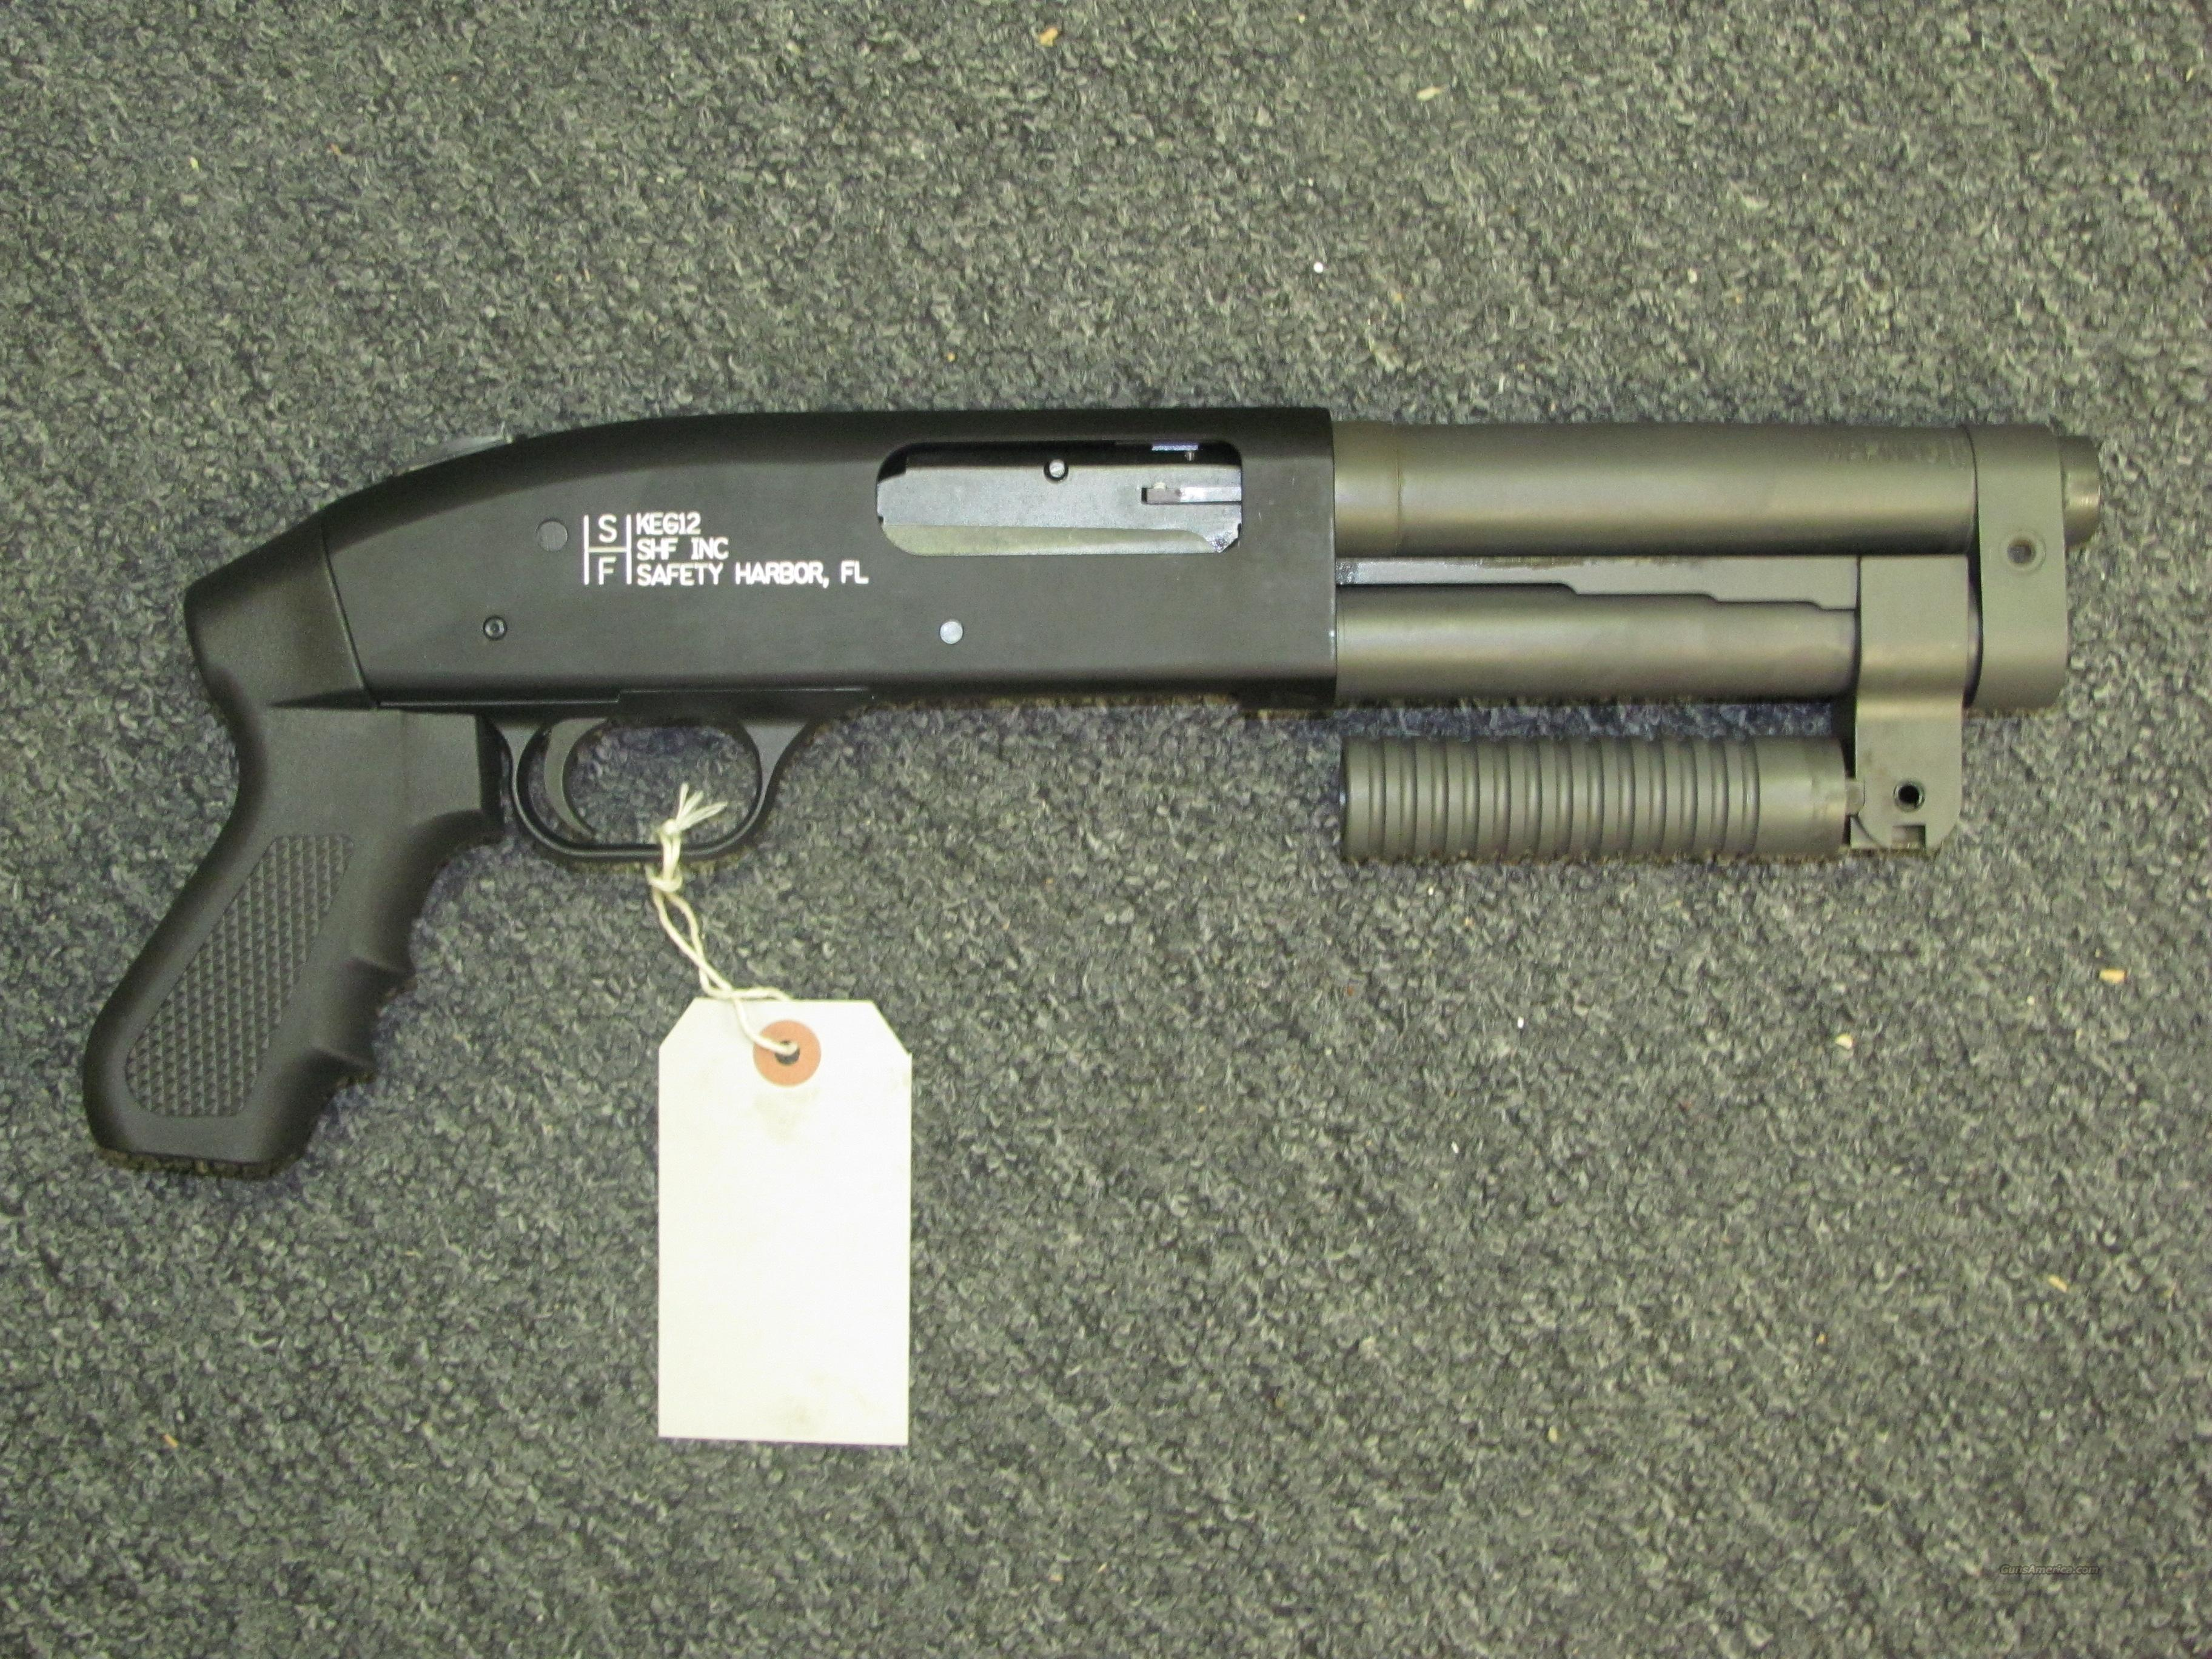 Safety Harbor Firearms KEG12 (Class III AOW)  Guns > Shotguns > Class 3 Shotguns > Class 3 Any Other Weapon